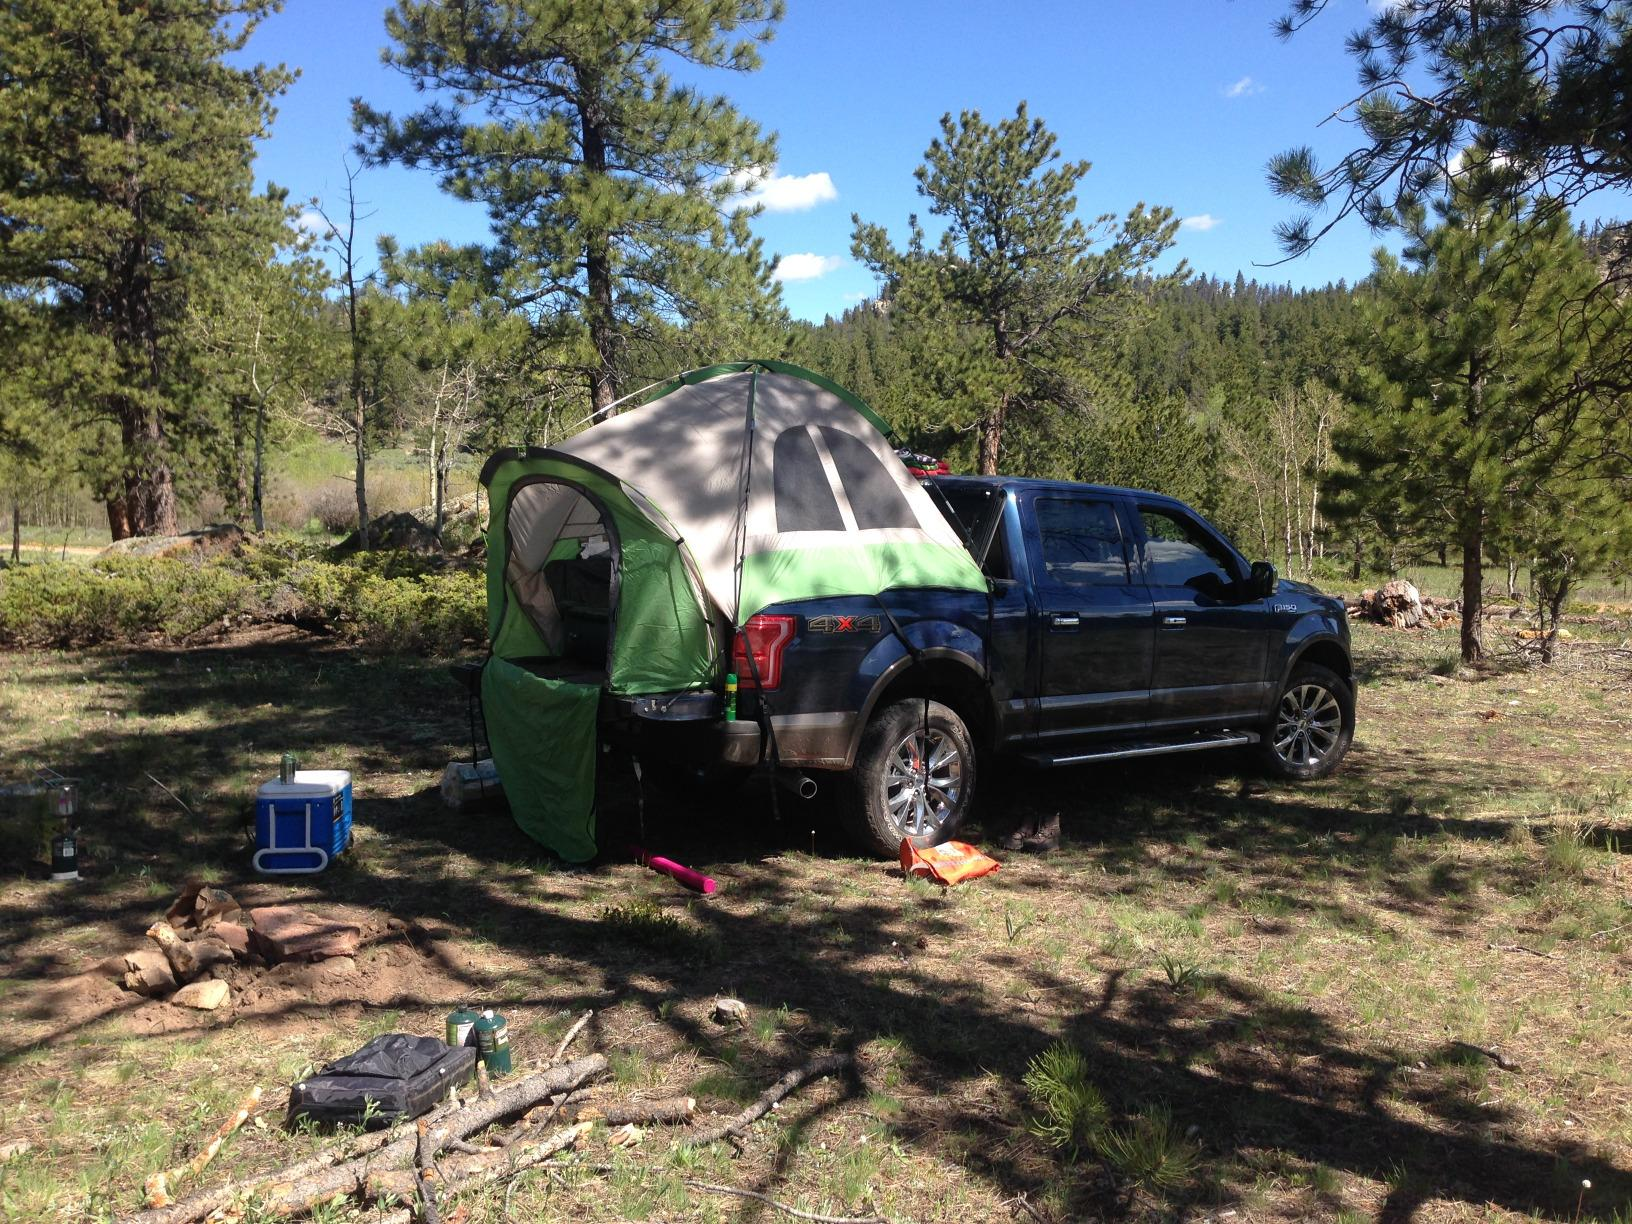 Tent set up just fine with the tonneau cover flipped up in place. Plenty of room, and more